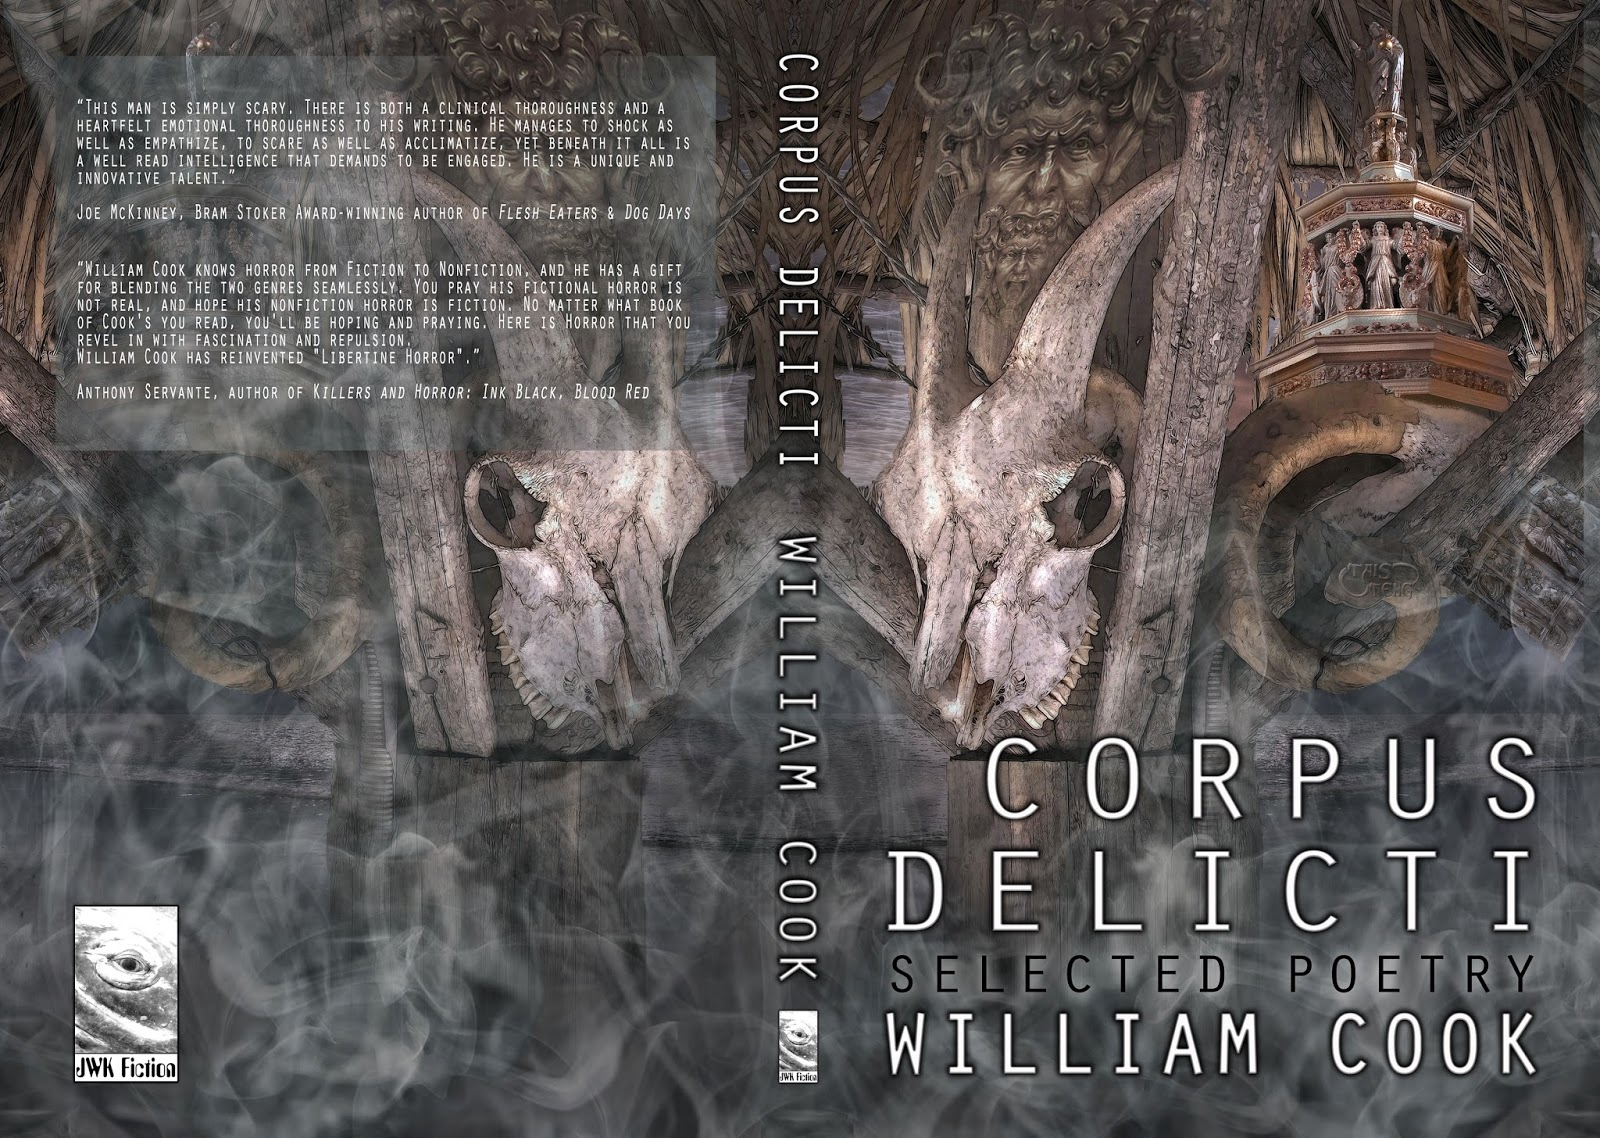 http://www.amazon.com/Corpus-Delicti-William-Cook/dp/0692210849/ref=la_B003PA513I_1_4?s=books&ie=UTF8&qid=1405901050&sr=1-4